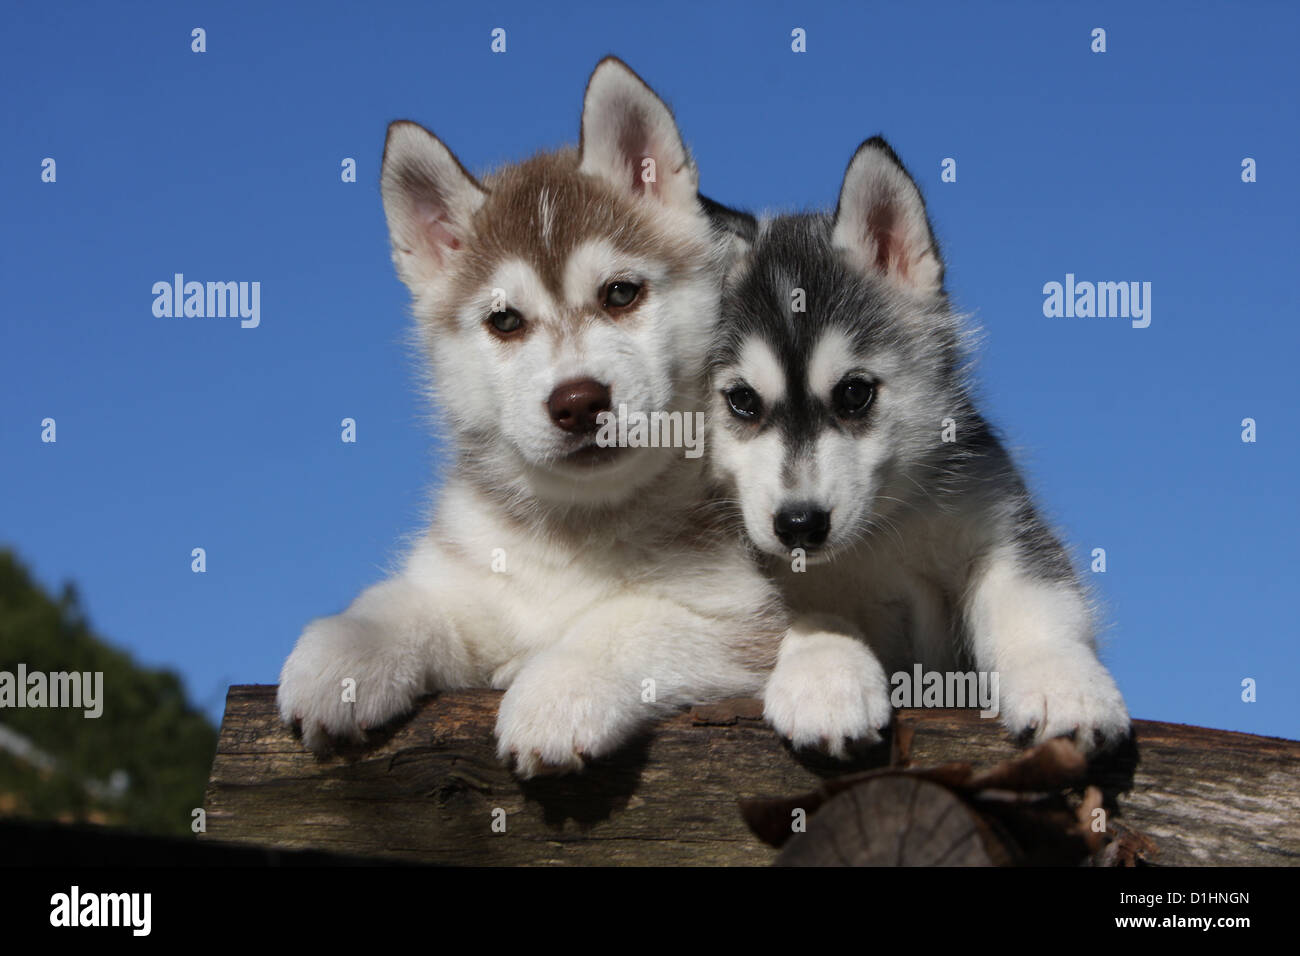 Dog Siberian Husky Two Puppies Black And White White And Brown On Stock Photo Alamy